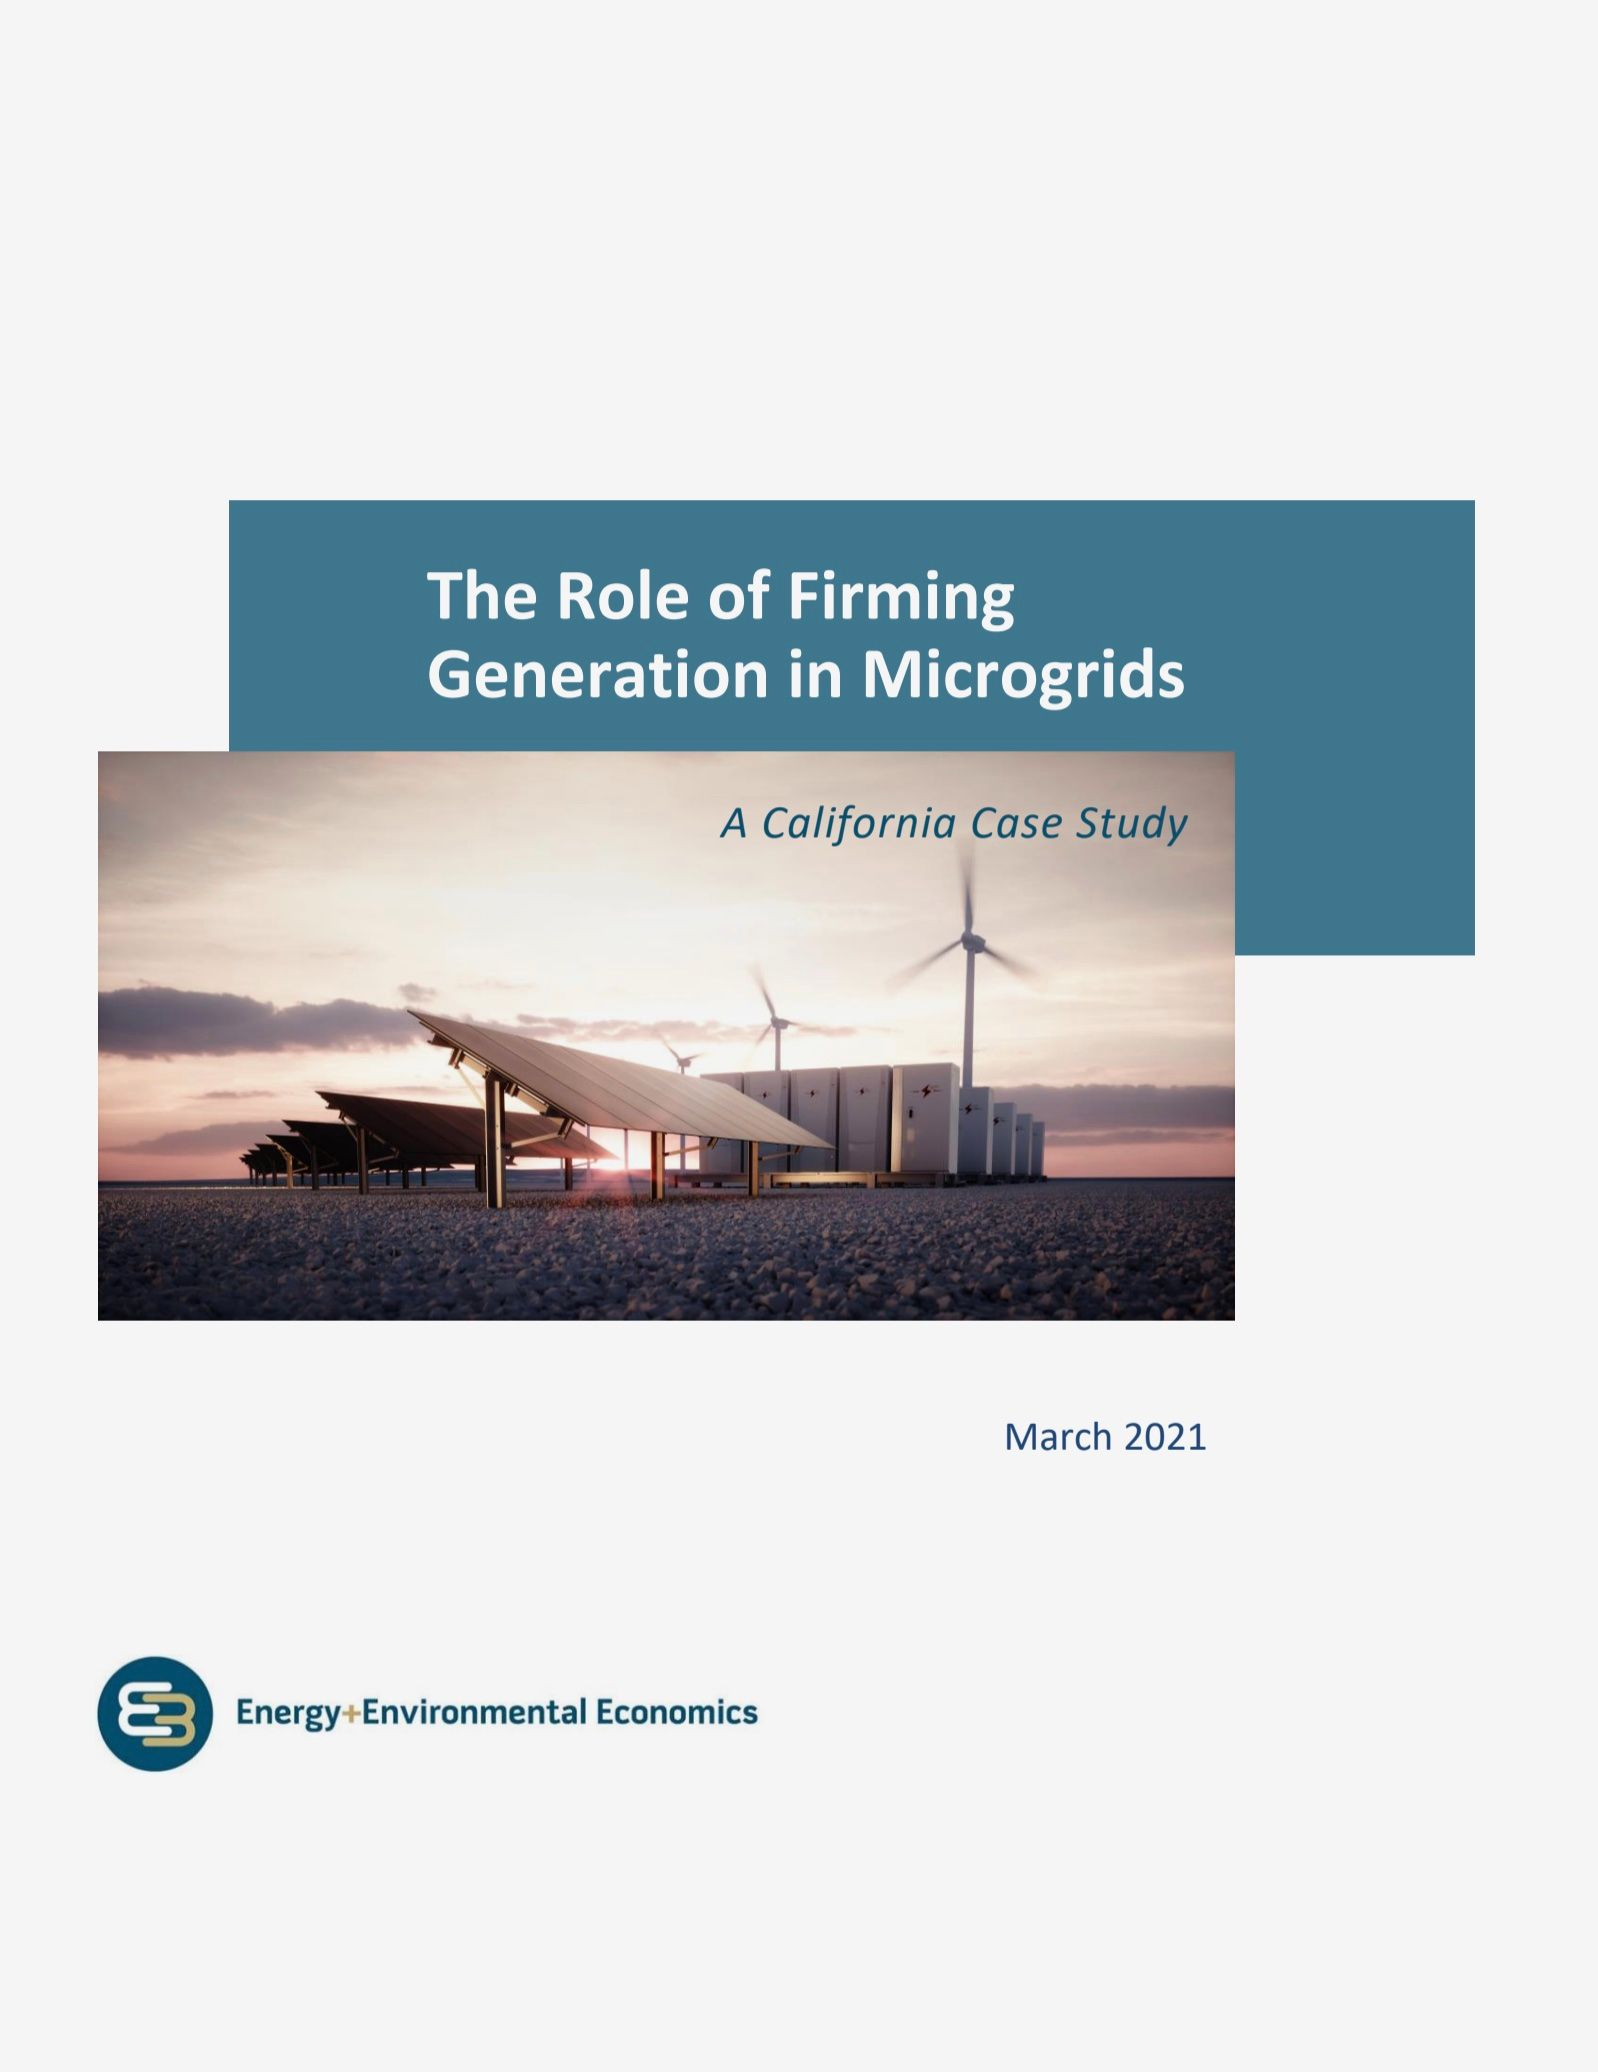 The Role of Firming Generation in Microgrids